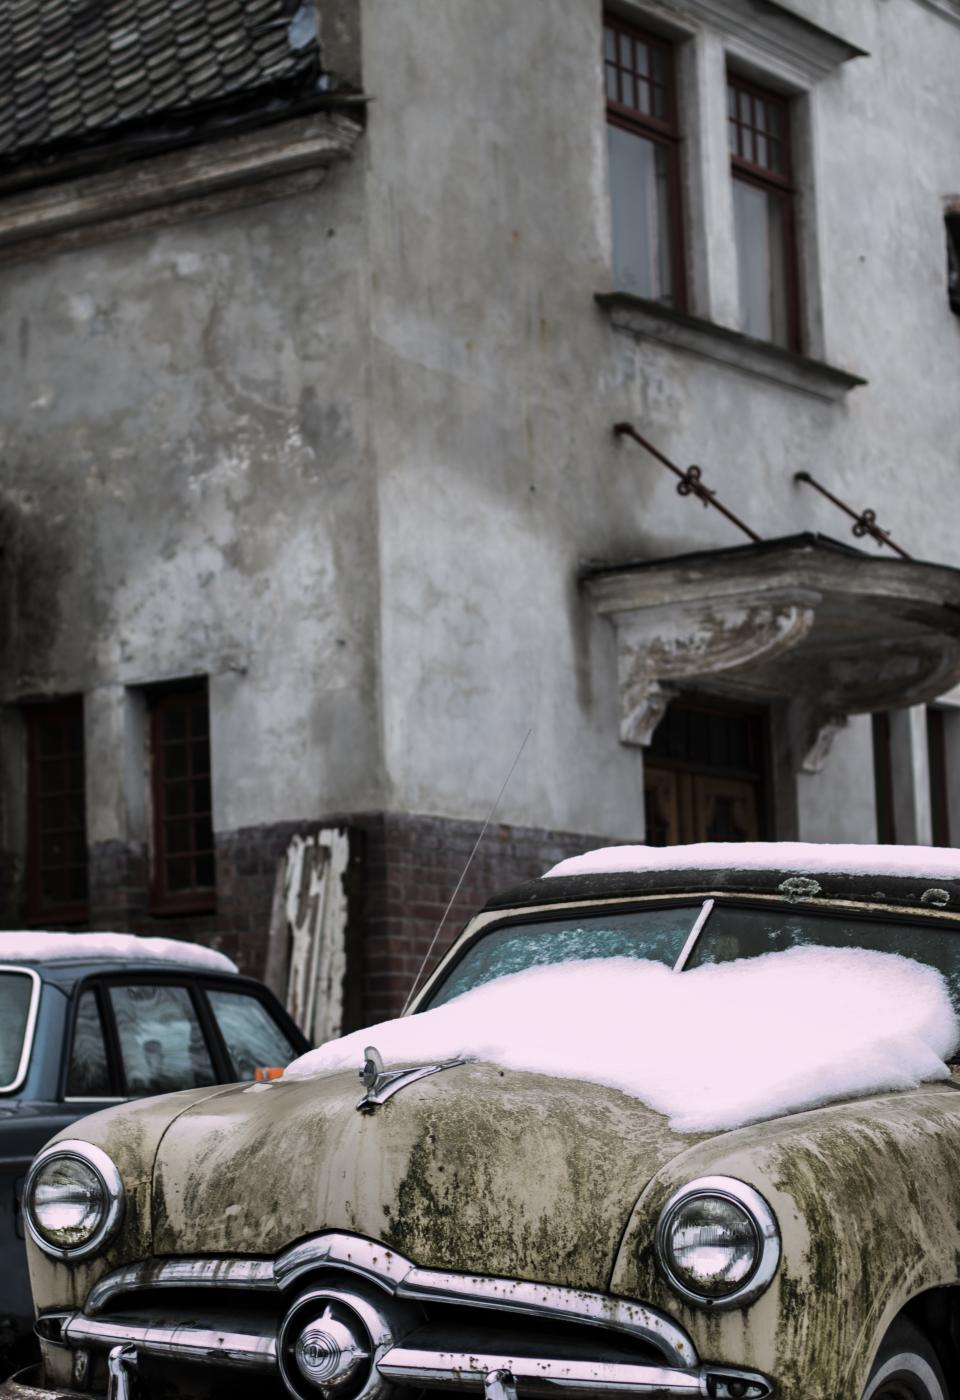 car, snow, cold, winter, windshield, house, building, vintage